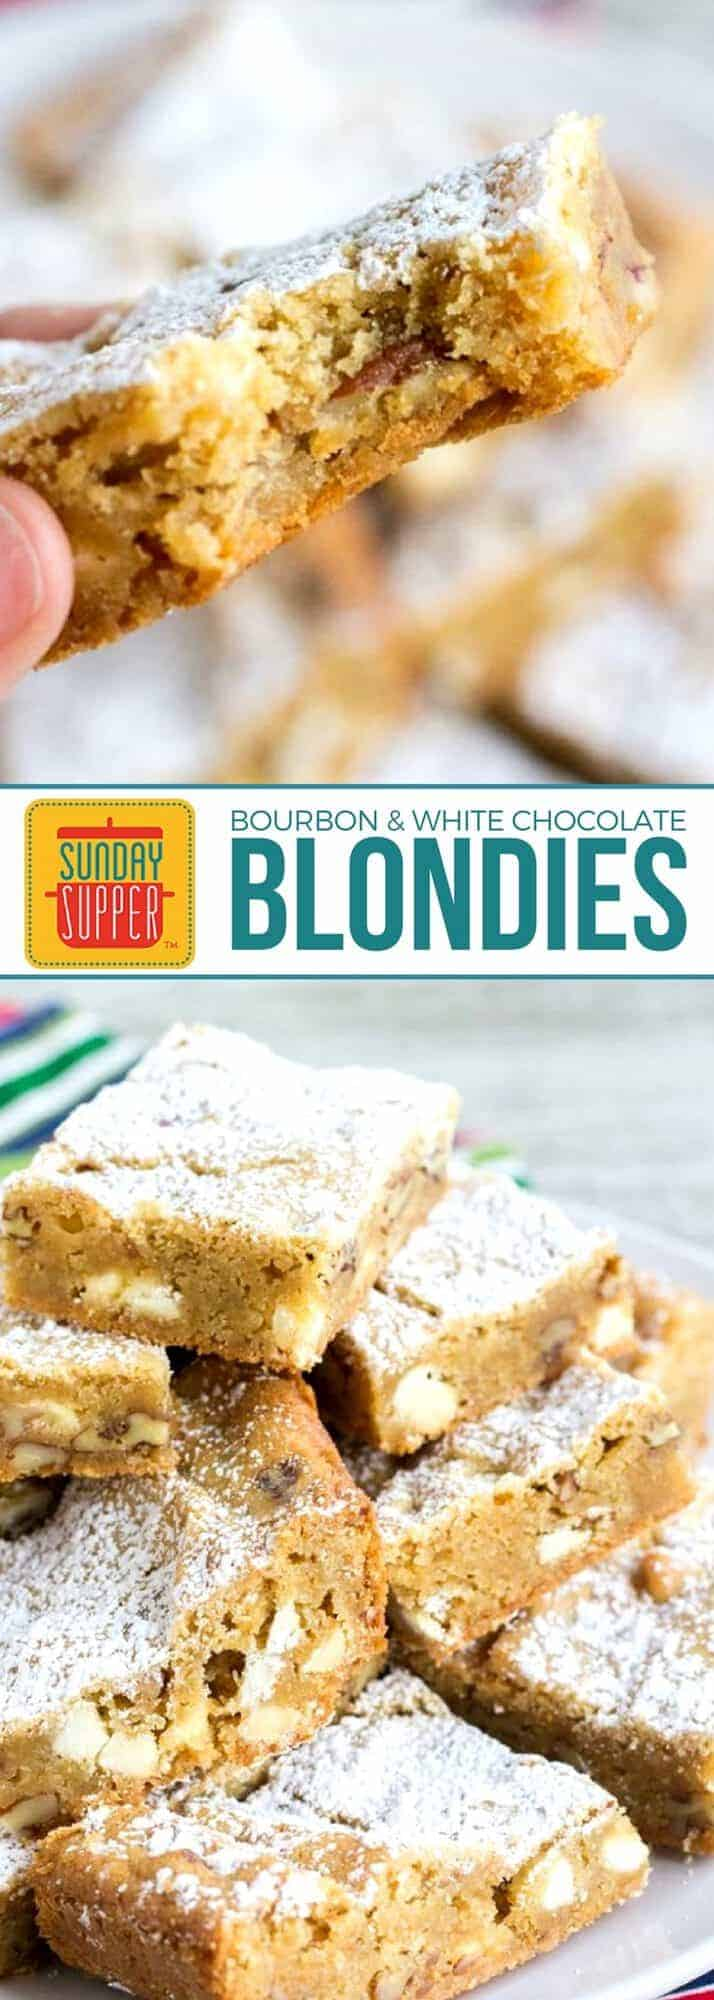 This Chewy Blondies Recipe is a must for the holiday season! Loaded with white chocolate chips & pecans, they're a guaranteed hit for any occasion! A great addition to your dessert table or to give as a holiday gift, this easy recipe with a little bit of bourbon will be loved by all! #SundaySupper #Blondies #DessertRecipe #HolidayRecipe #BourbonRecipe #cookieexchange